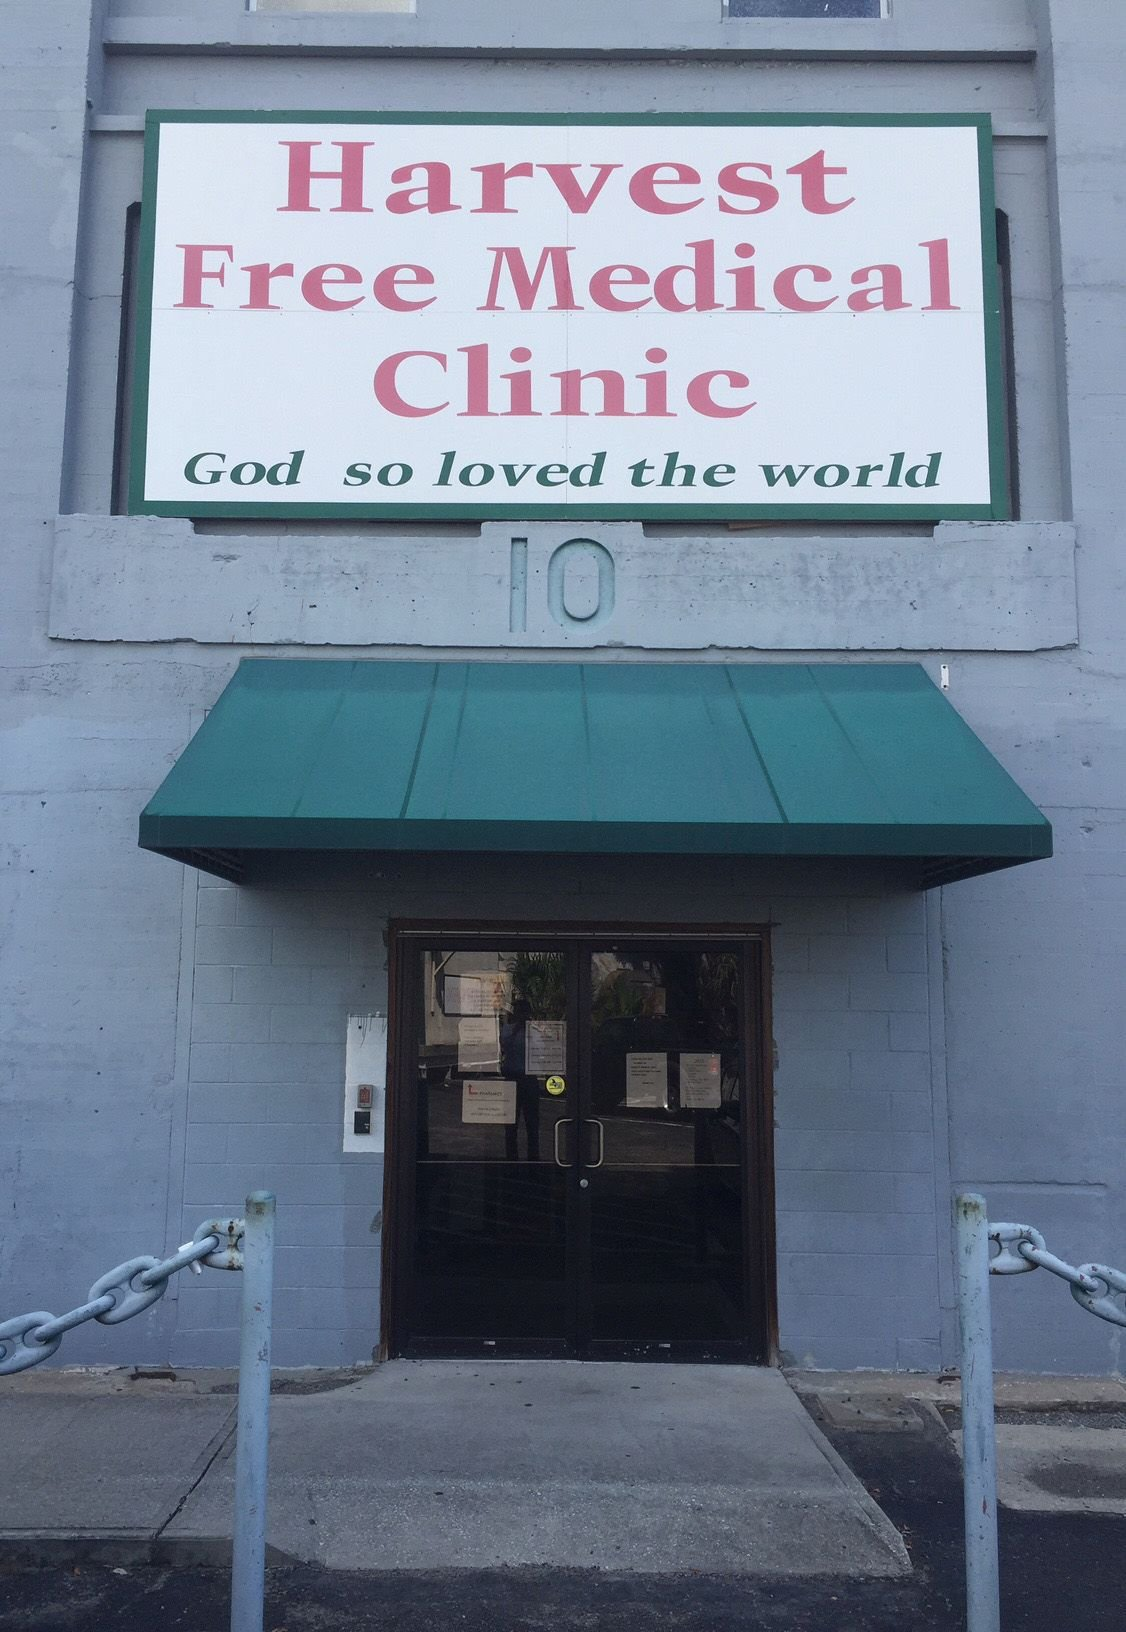 Free clinic provides much-needed care to community